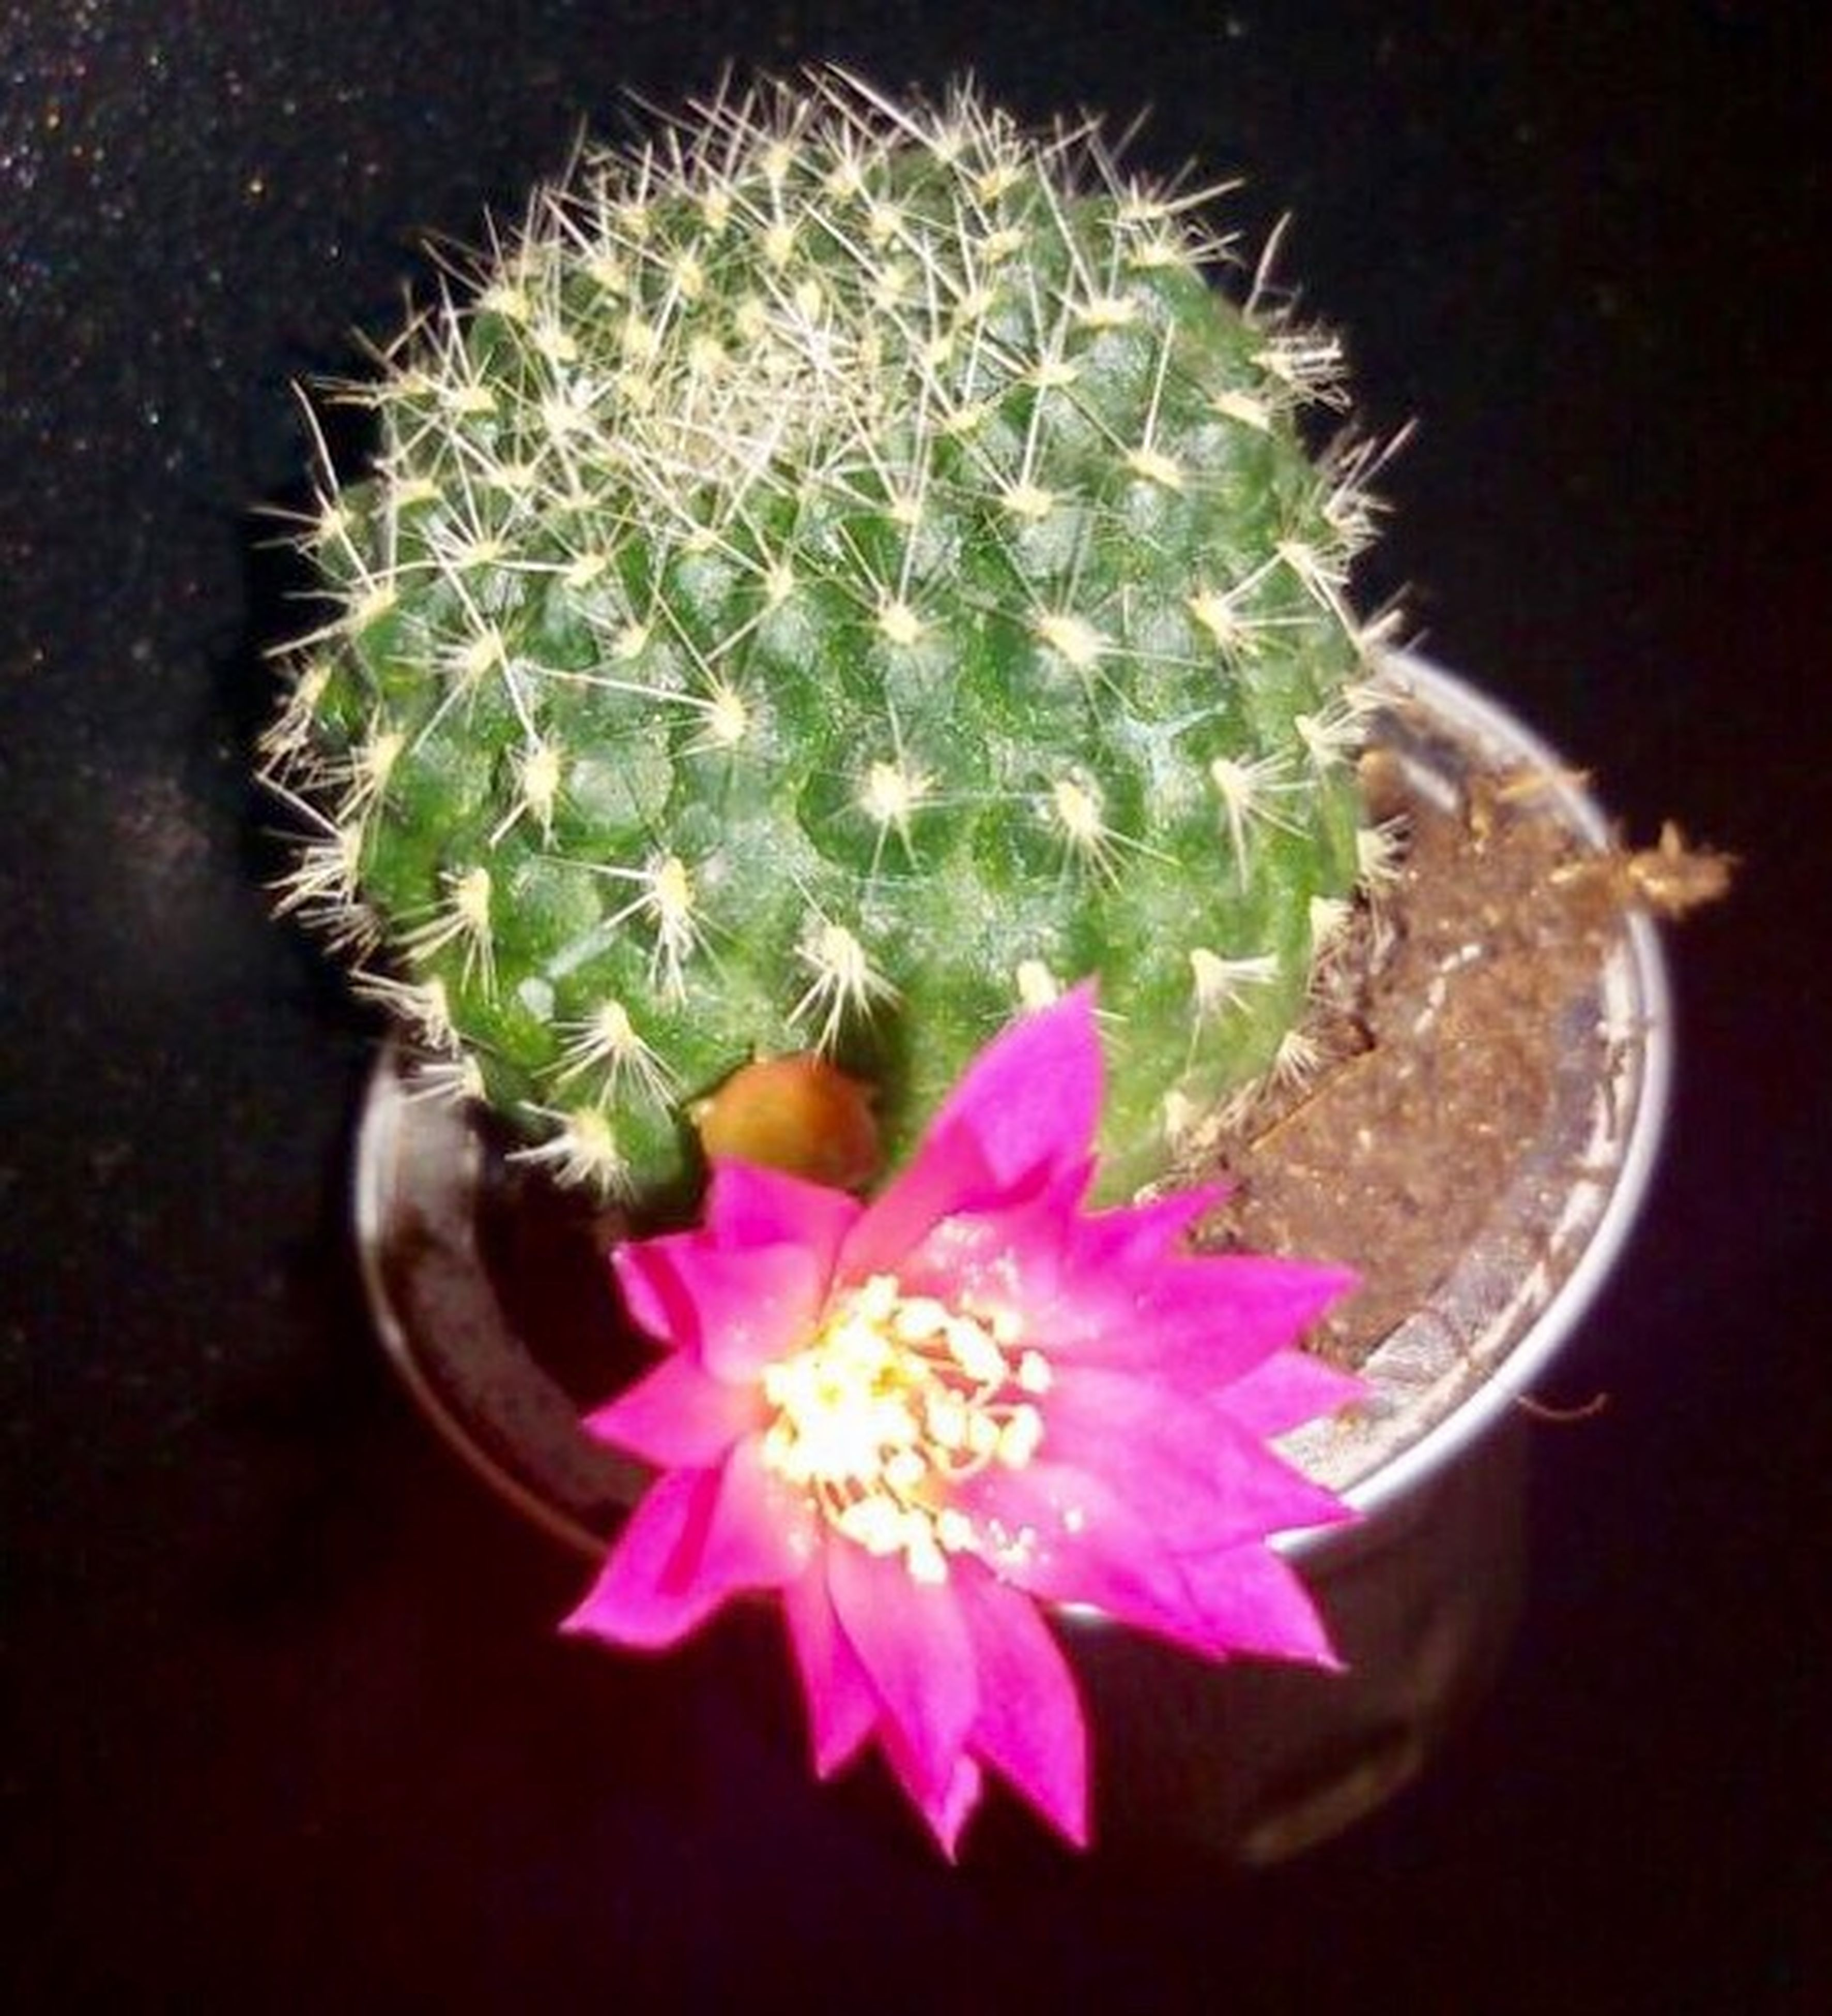 nature, flower, plant, beauty in nature, growth, pink color, thorn, flower head, cactus, close-up, freshness, spiked, no people, fragility, outdoors, day